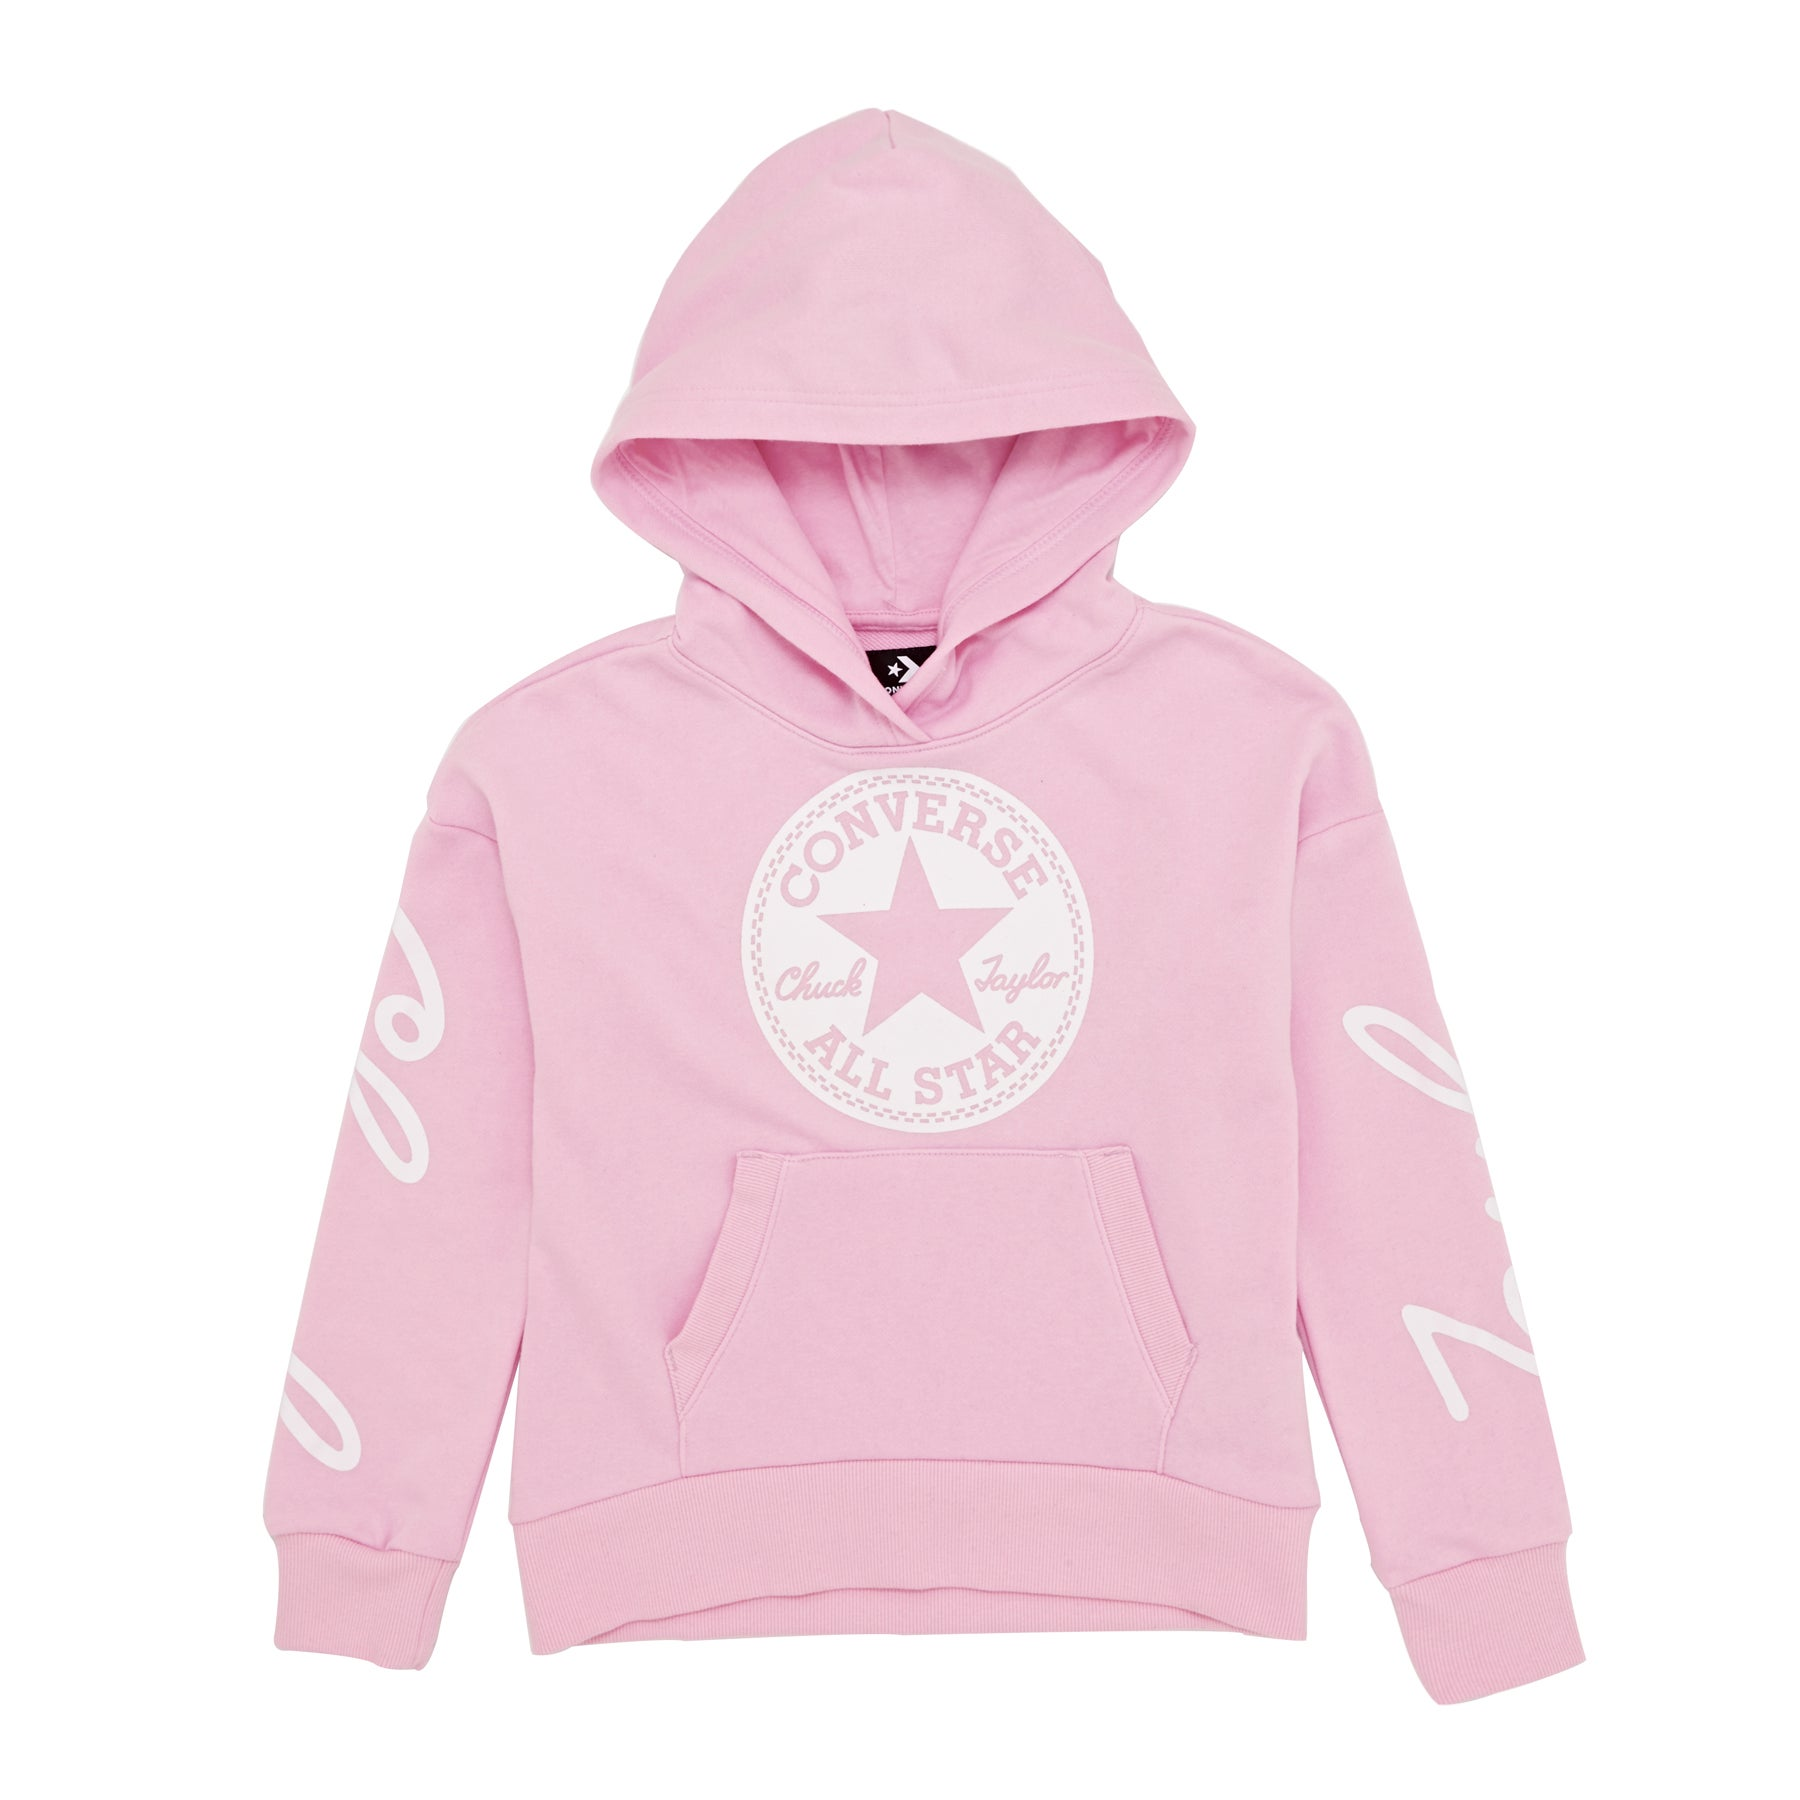 Converse Chuck Taylor Script F.t Pullover Pink Foam Kids Pullover Hoody available from Surfdome